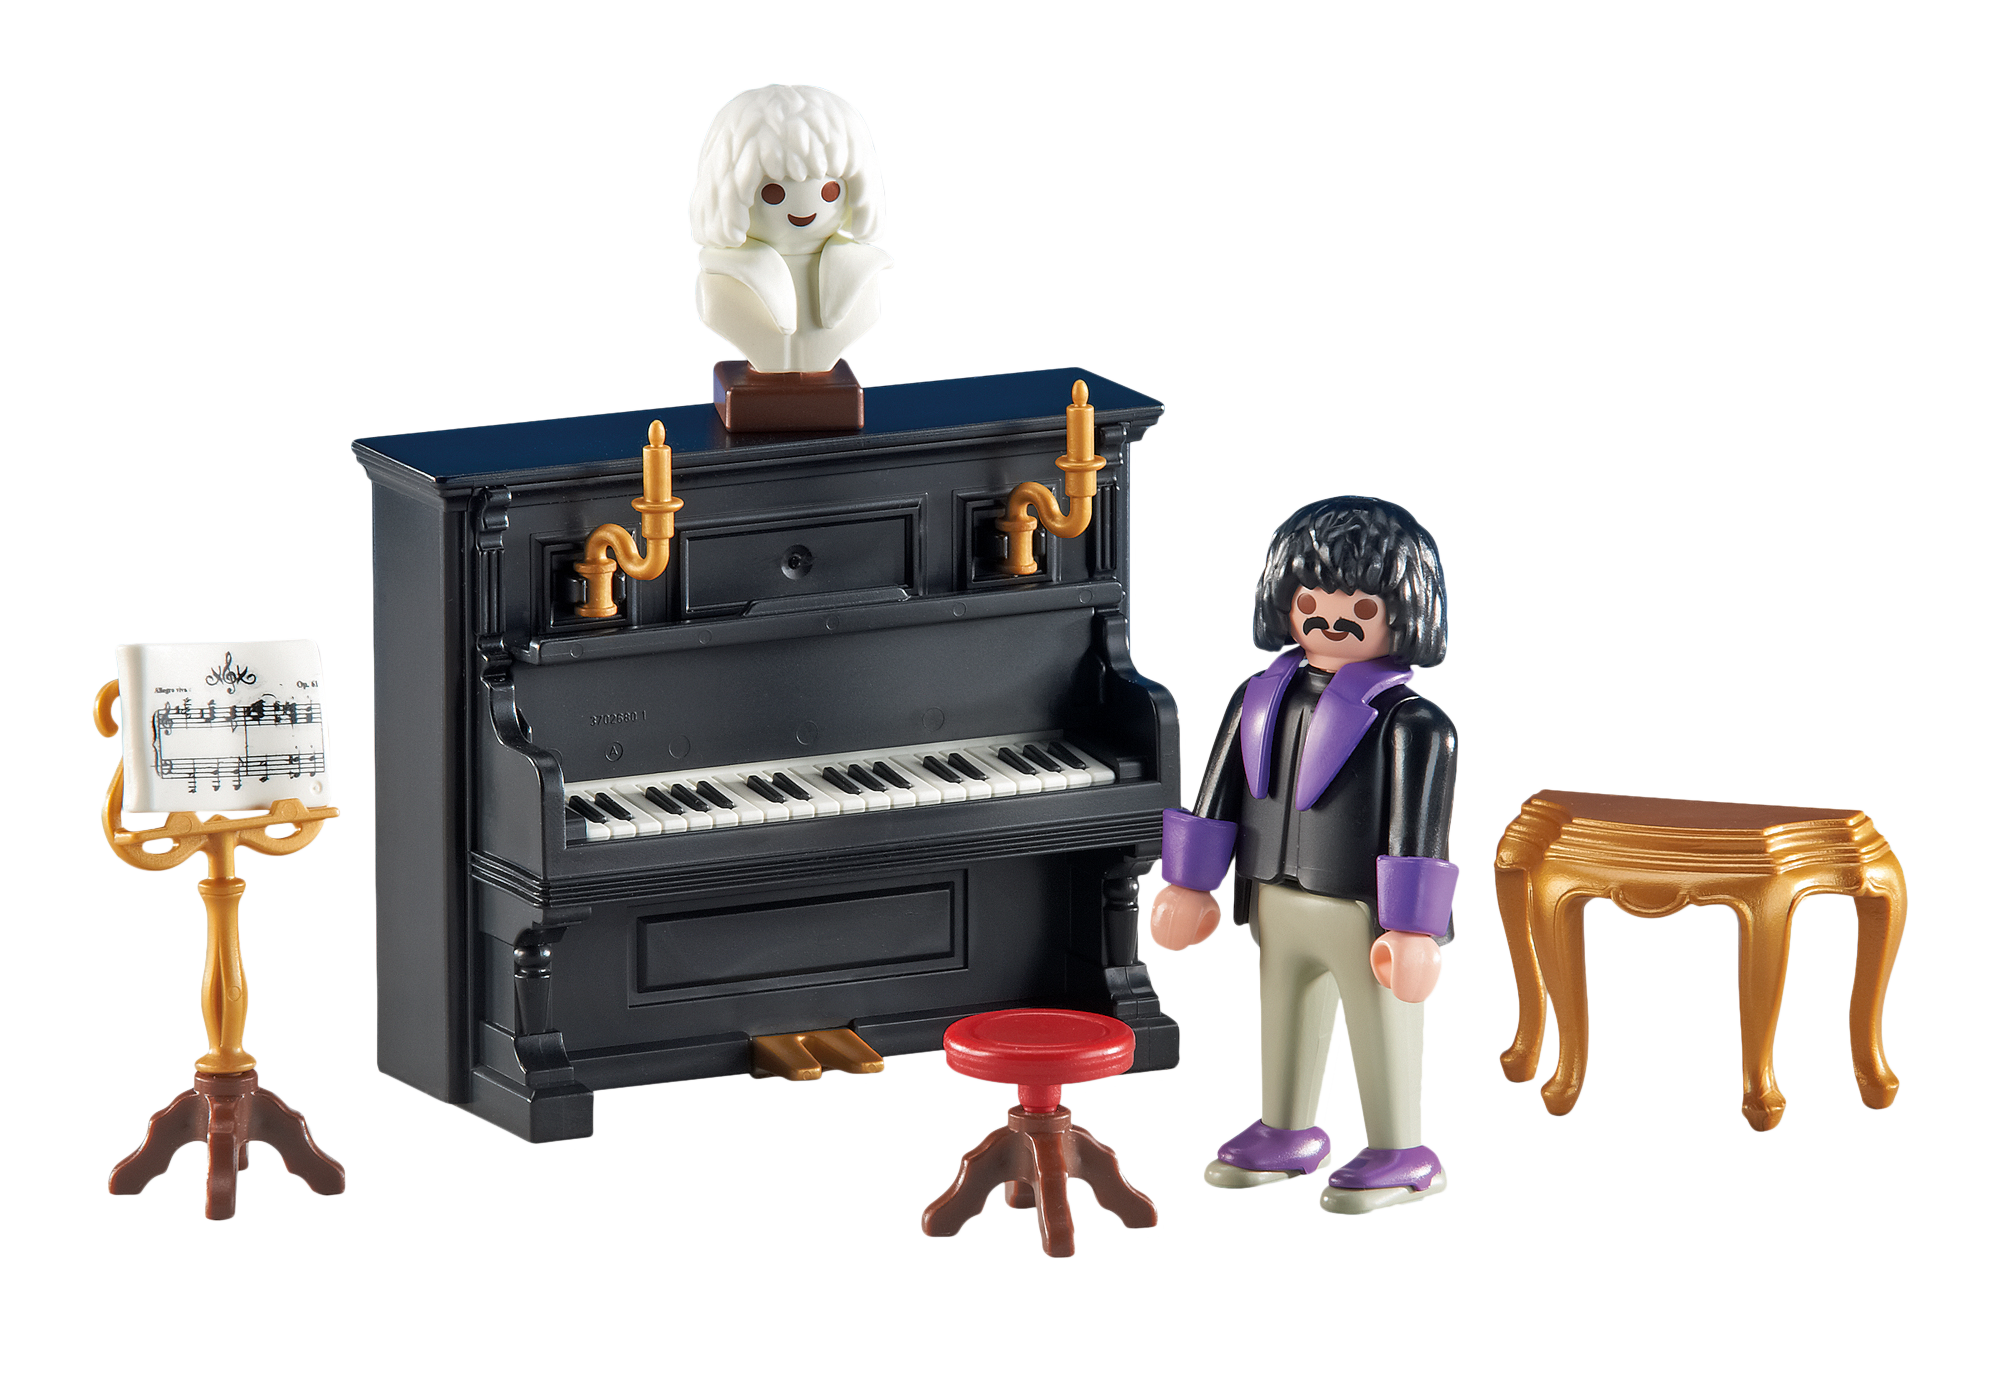 http://media.playmobil.com/i/playmobil/6527_product_detail/Pianist med piano